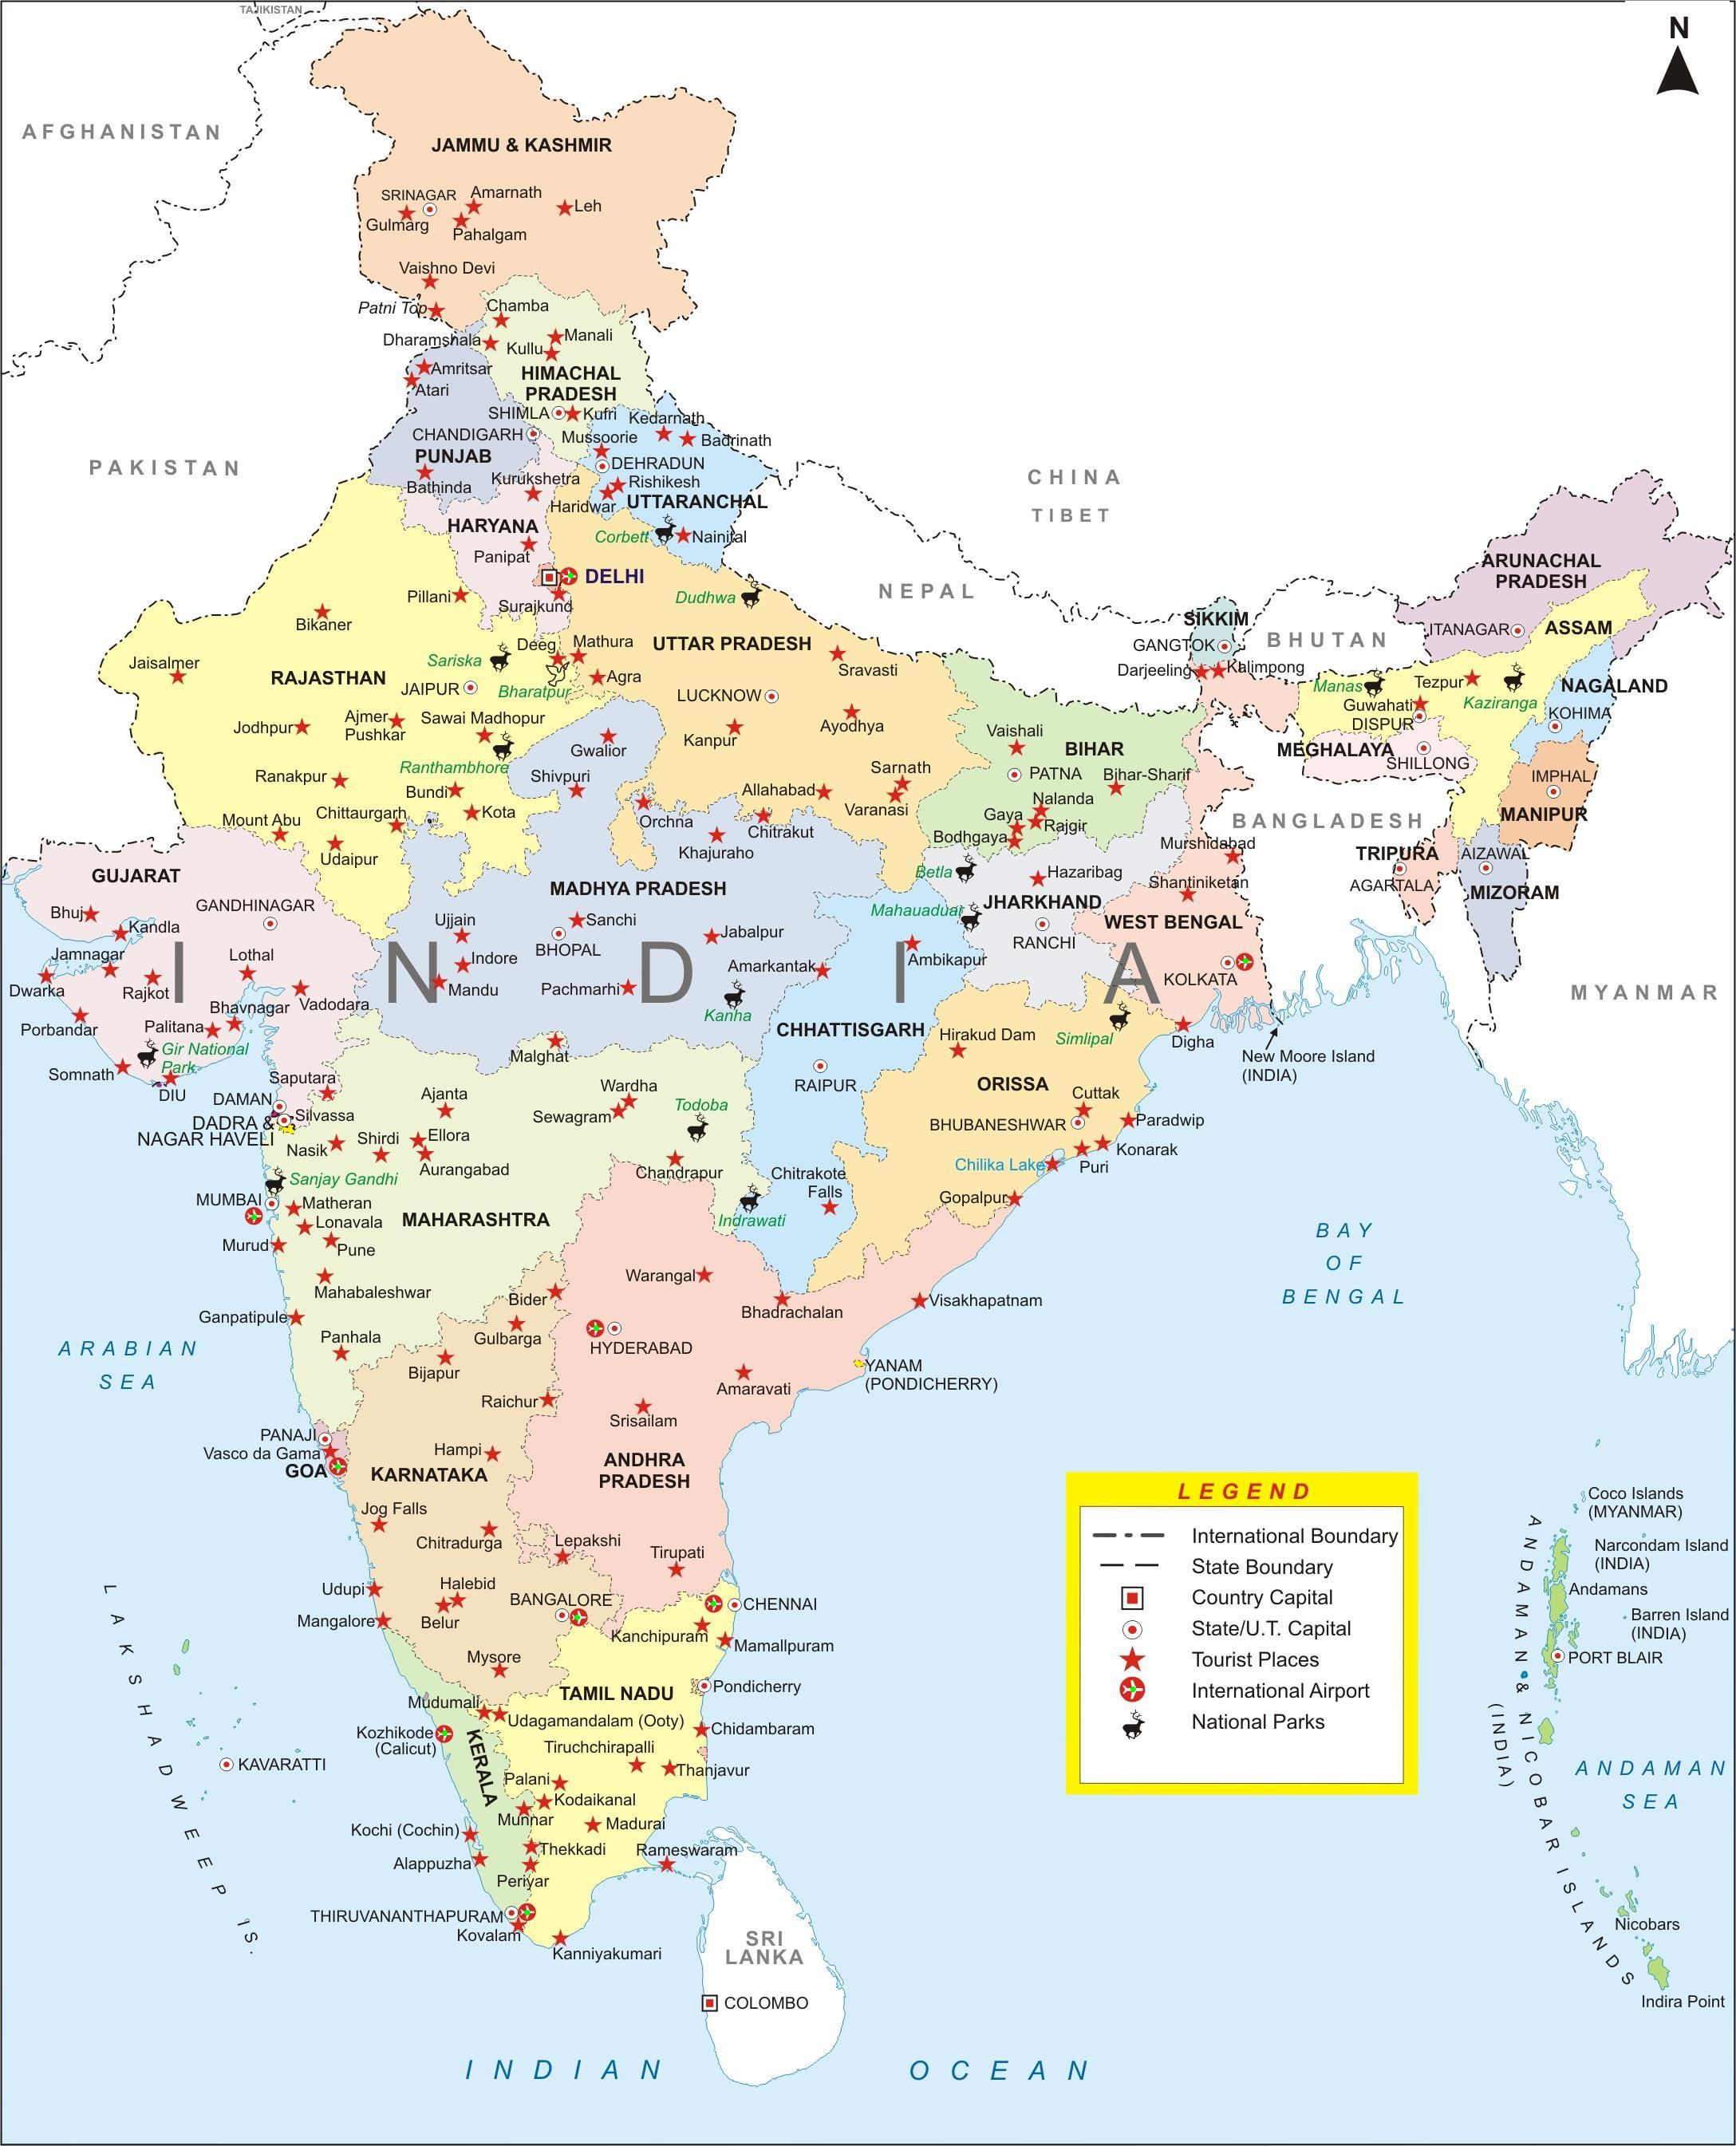 India Maps India Travel Map India Travel Guide - India map